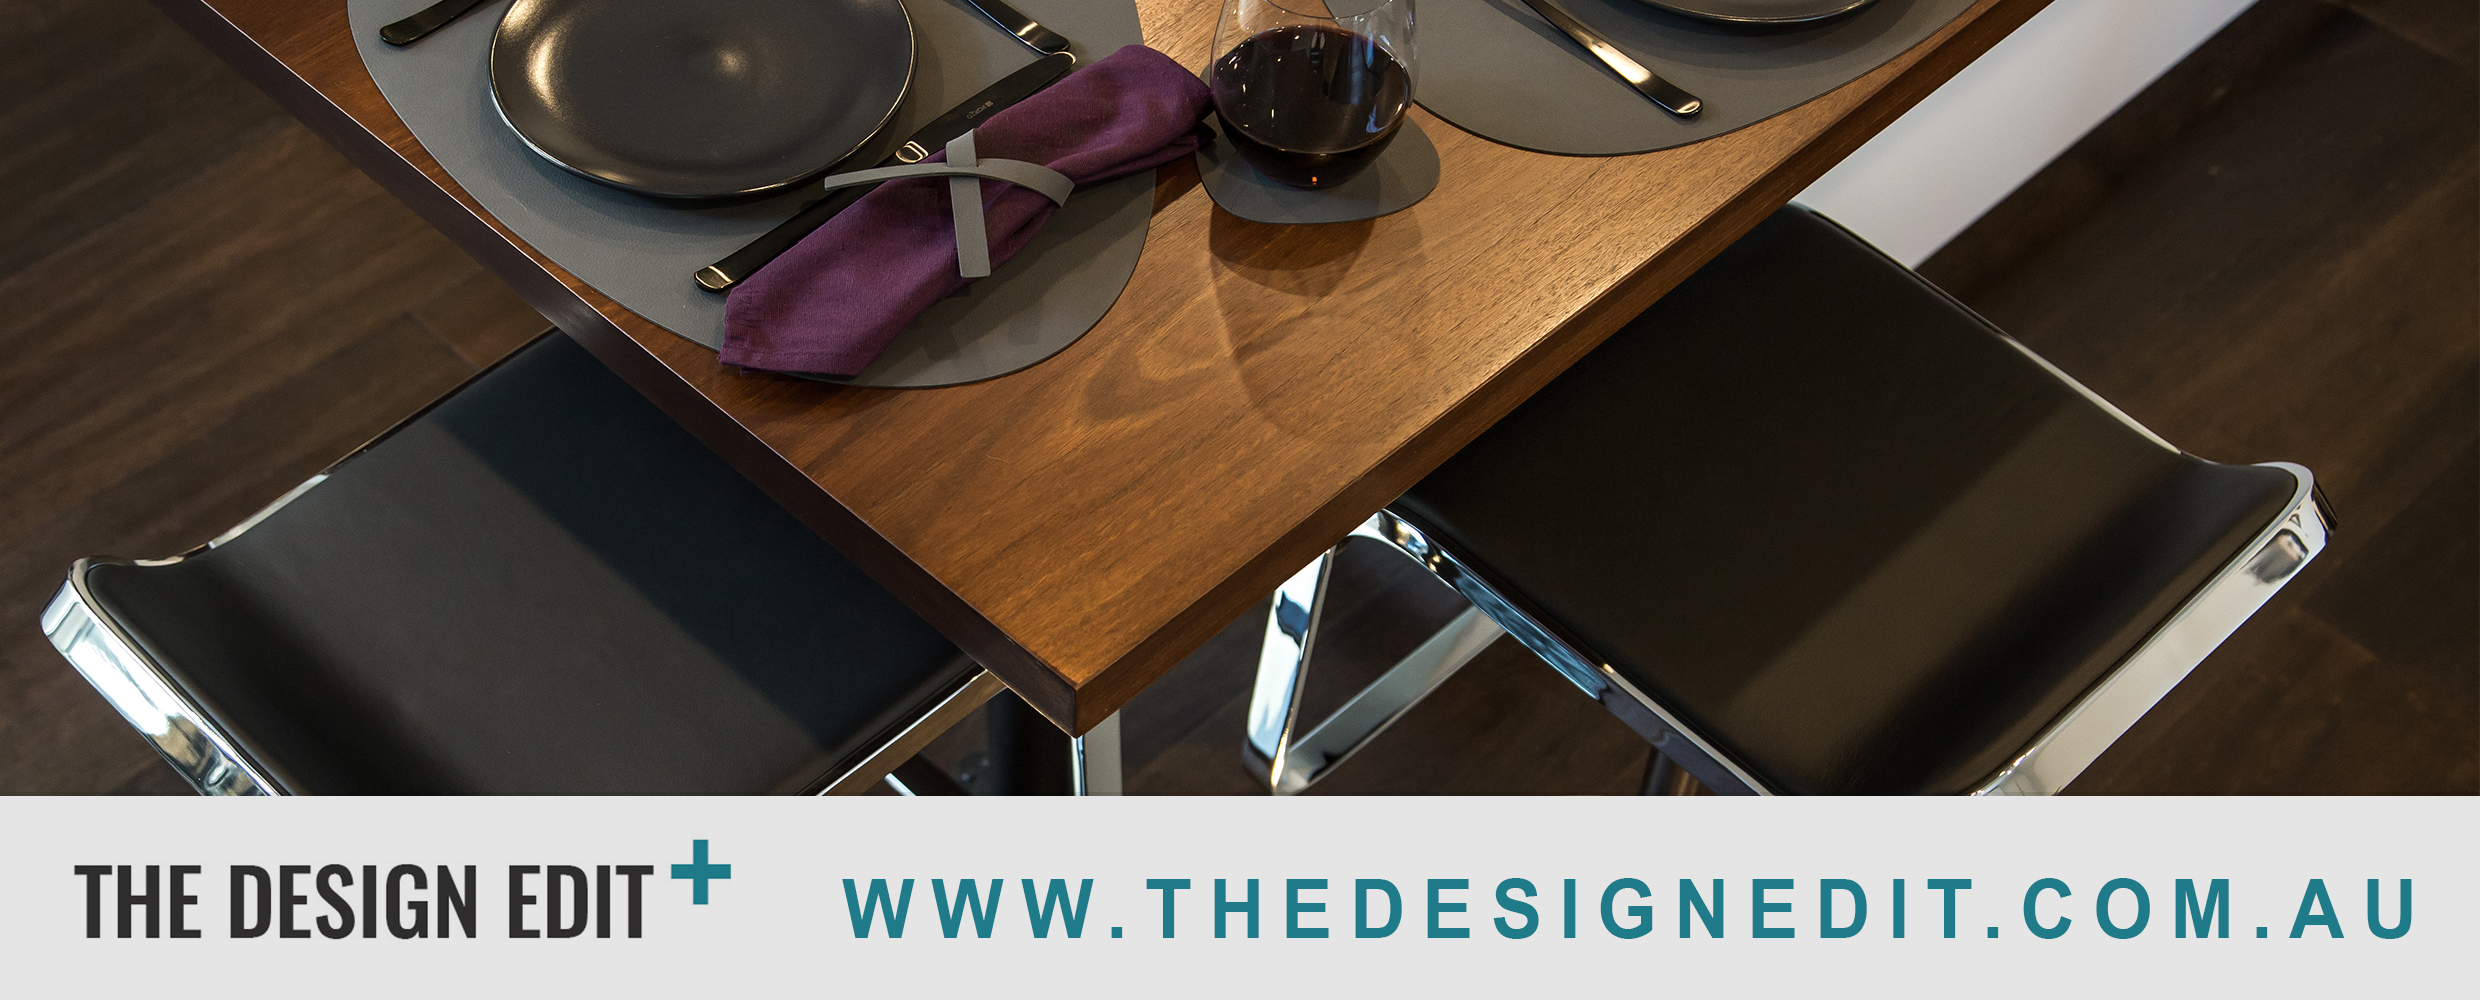 5-Tips-For-Furnishing-A-New-Home - THE-DESIGN-EDIT-AD